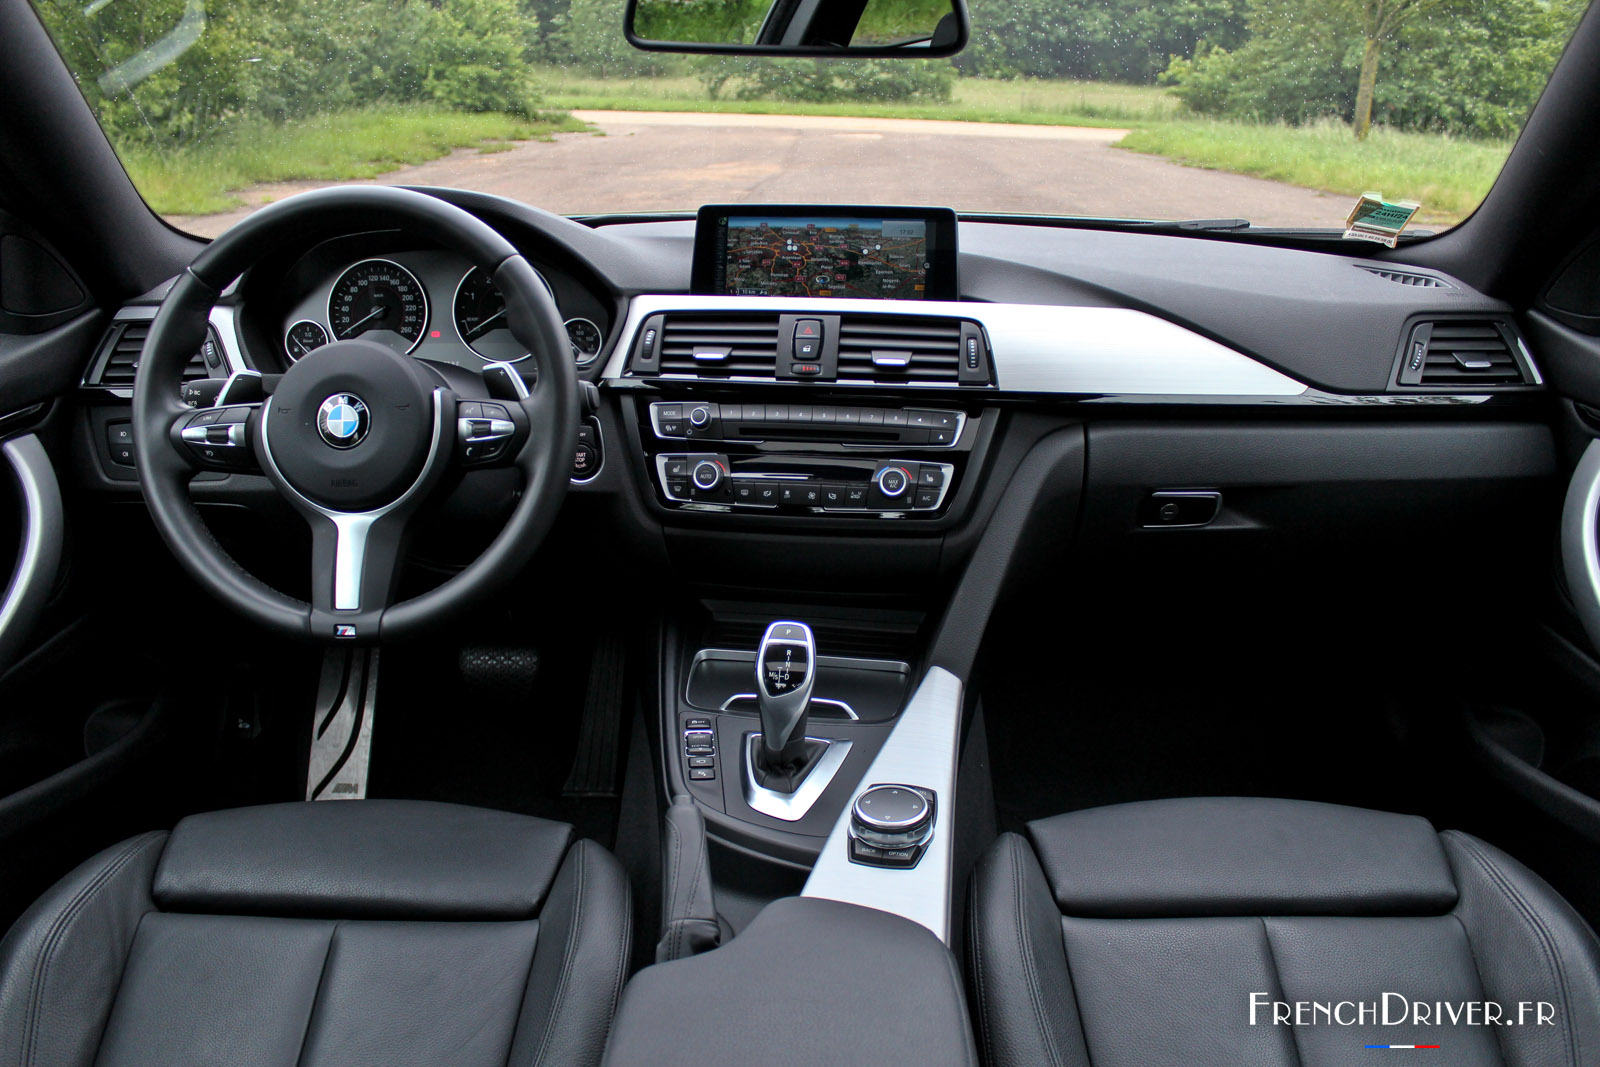 Essai de la bmw 430d coup la th orie de la relativit for Serie 1 interieur